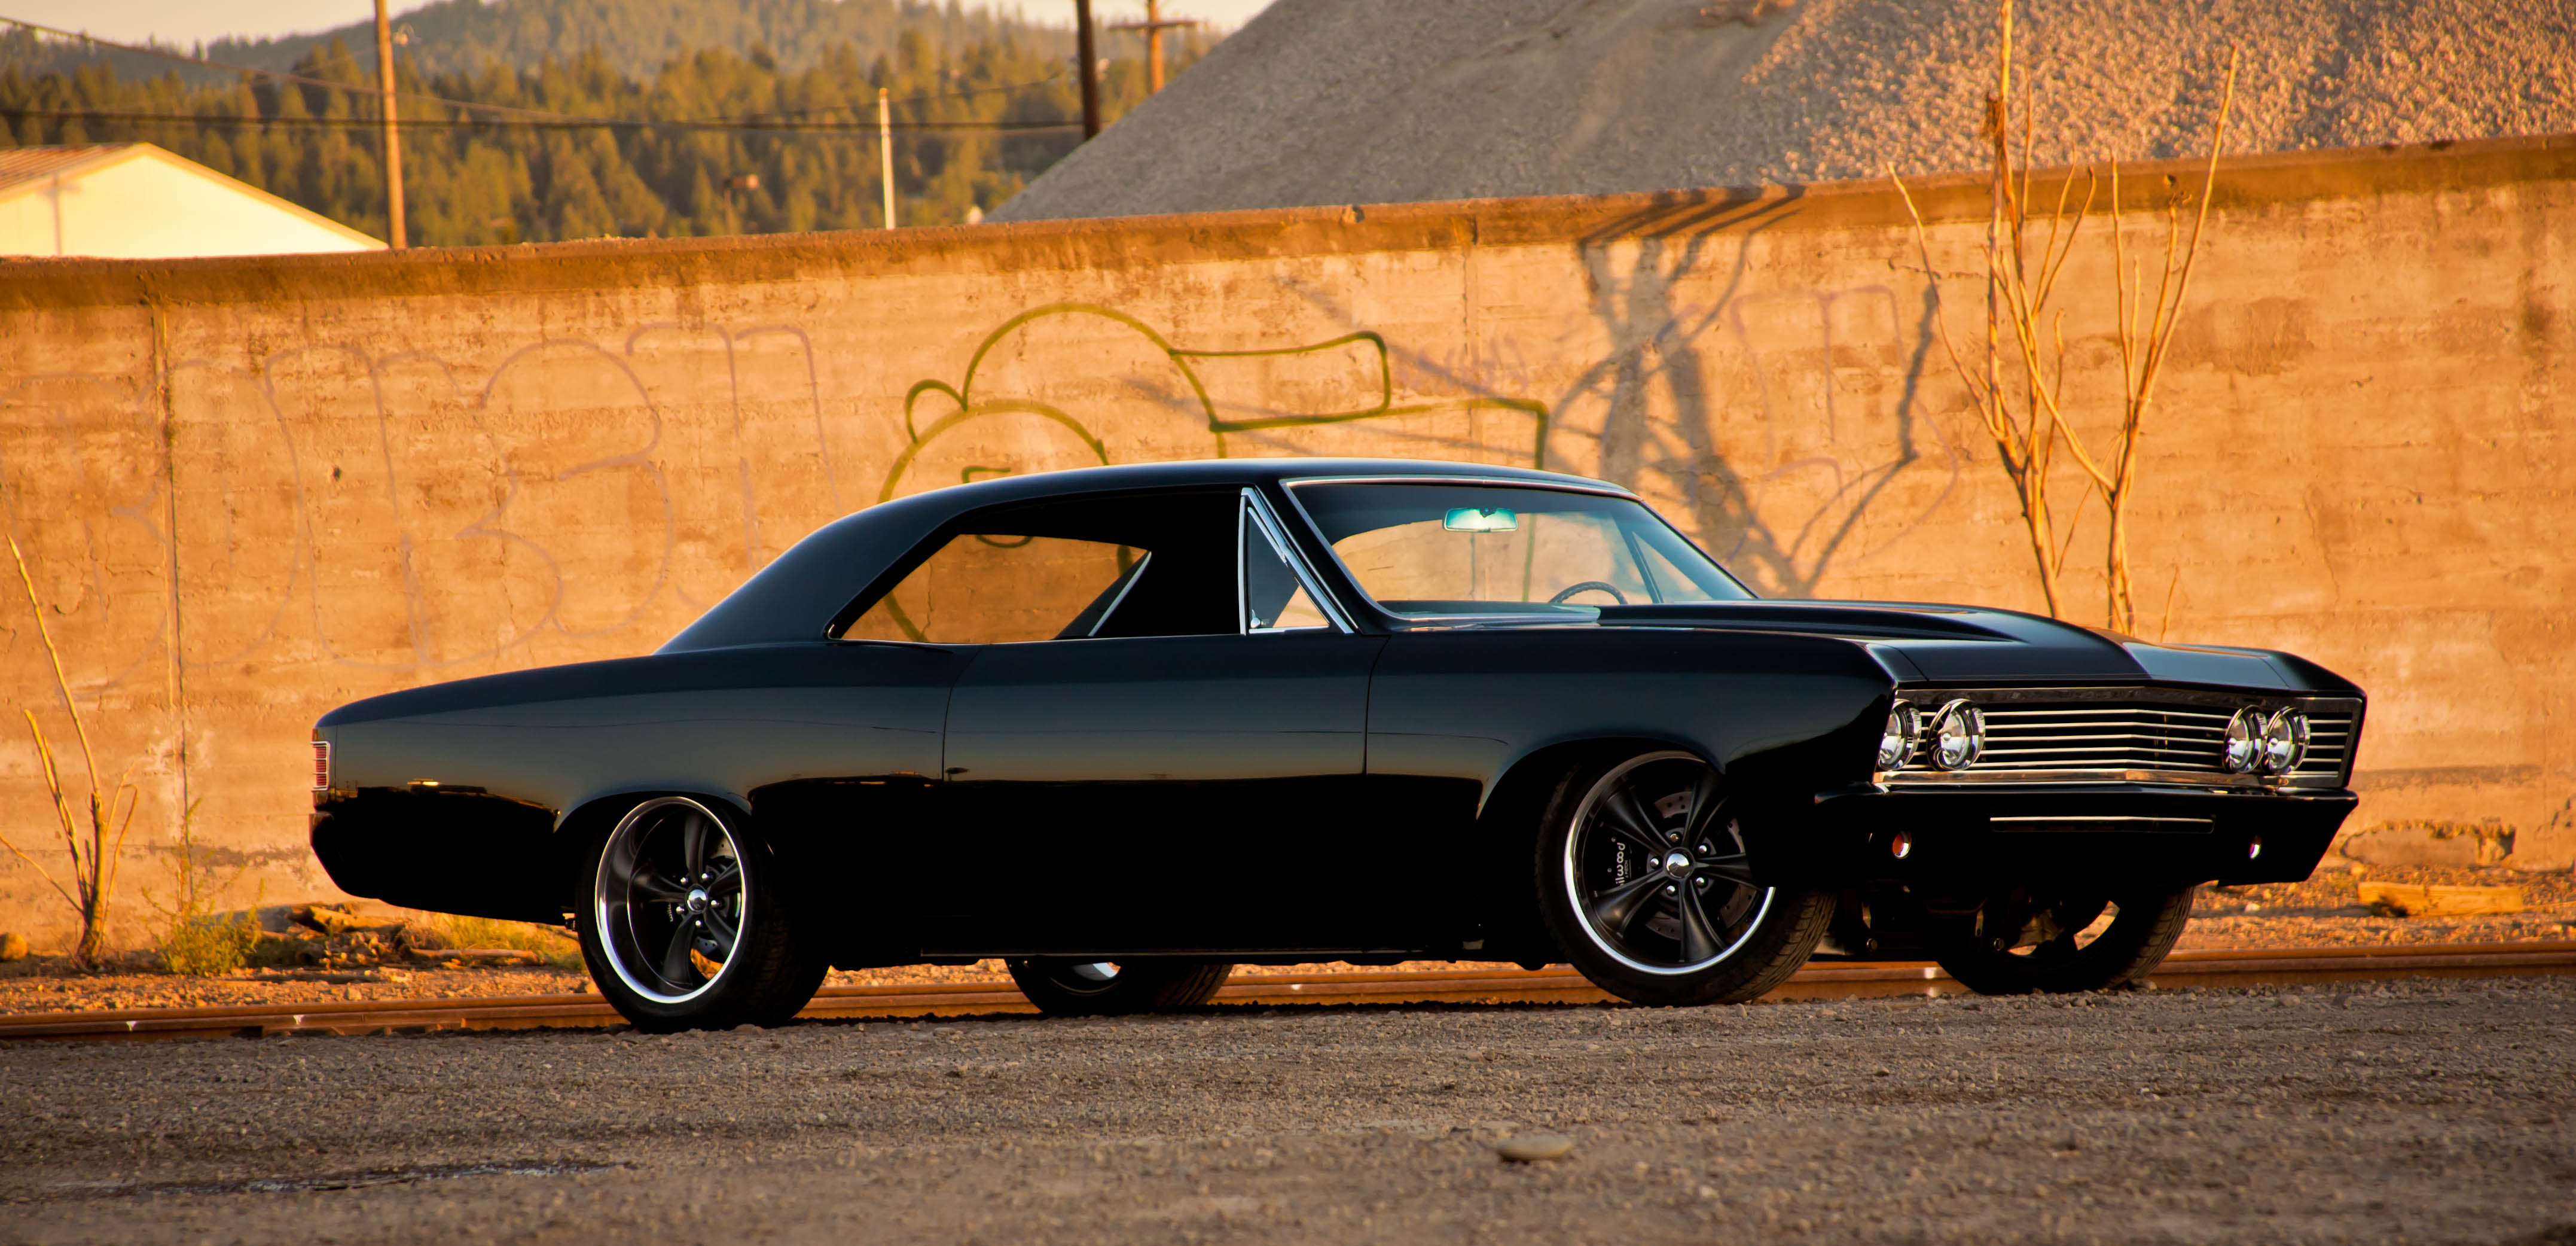 Cool Old Classic Car: Nice Car Old Cool Fast Classic Ford hd ...